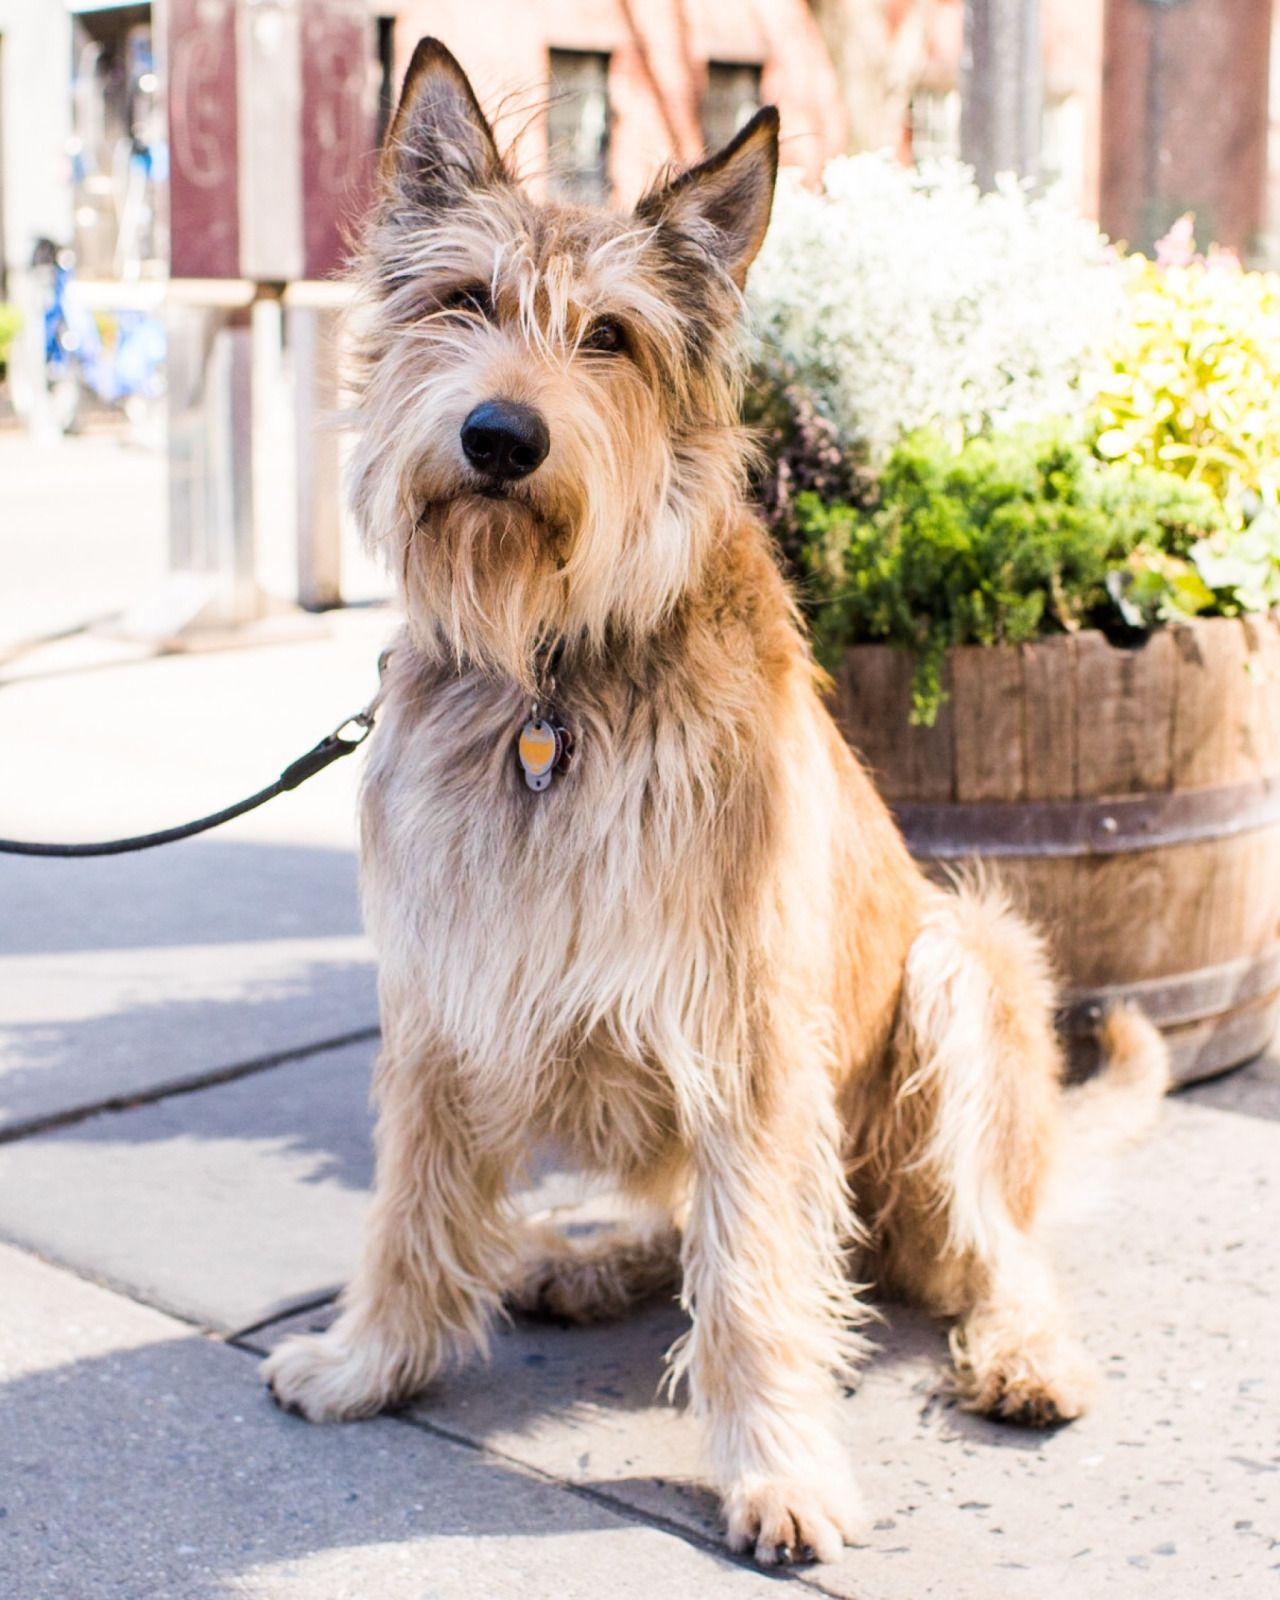 Helo Berger Picard 3 Y O Perry Bleecker St New York Ny He S A Total Goofball But He S Going Through Some Horm Nyc Dogs Beautiful Dogs Herding Dogs